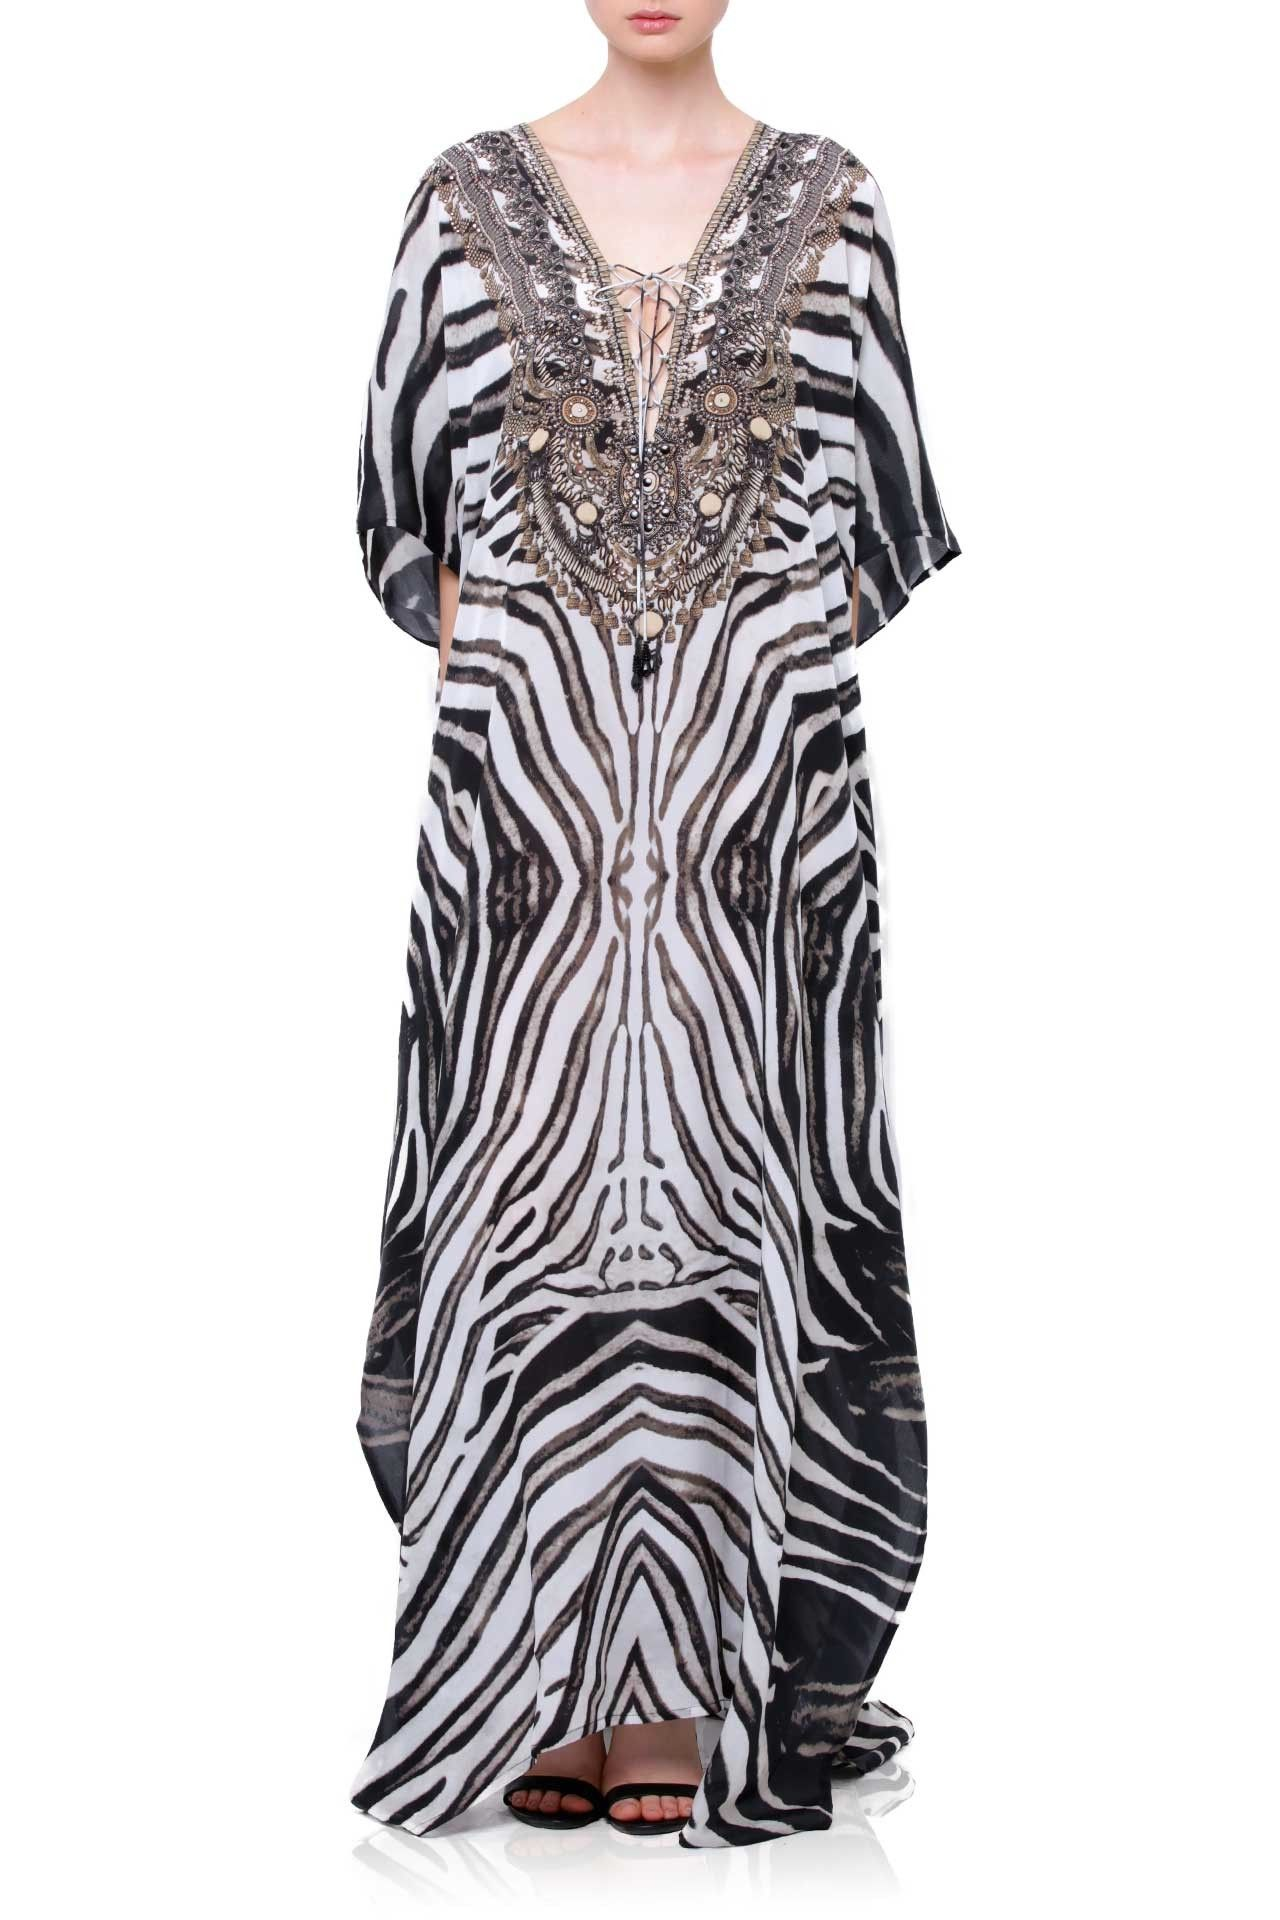 Printed kaftan dress plus size kaftans long kaftans shahida